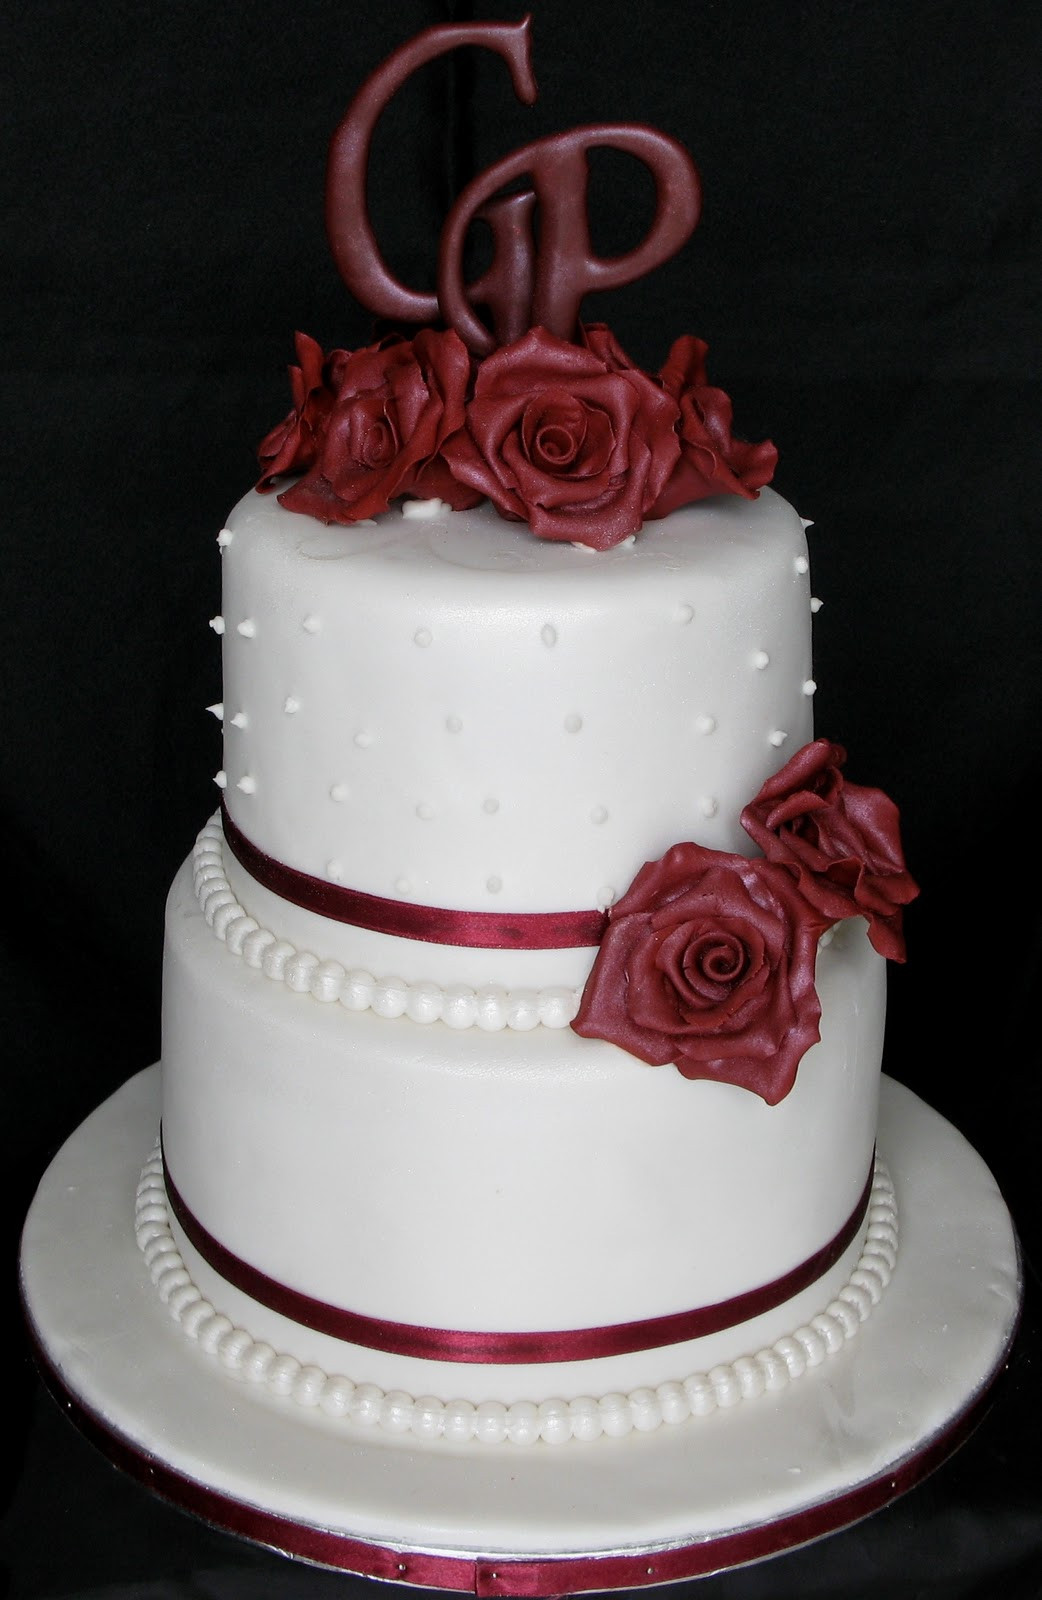 2 Layers Wedding Cakes  Sugarcraft by Soni October 2011